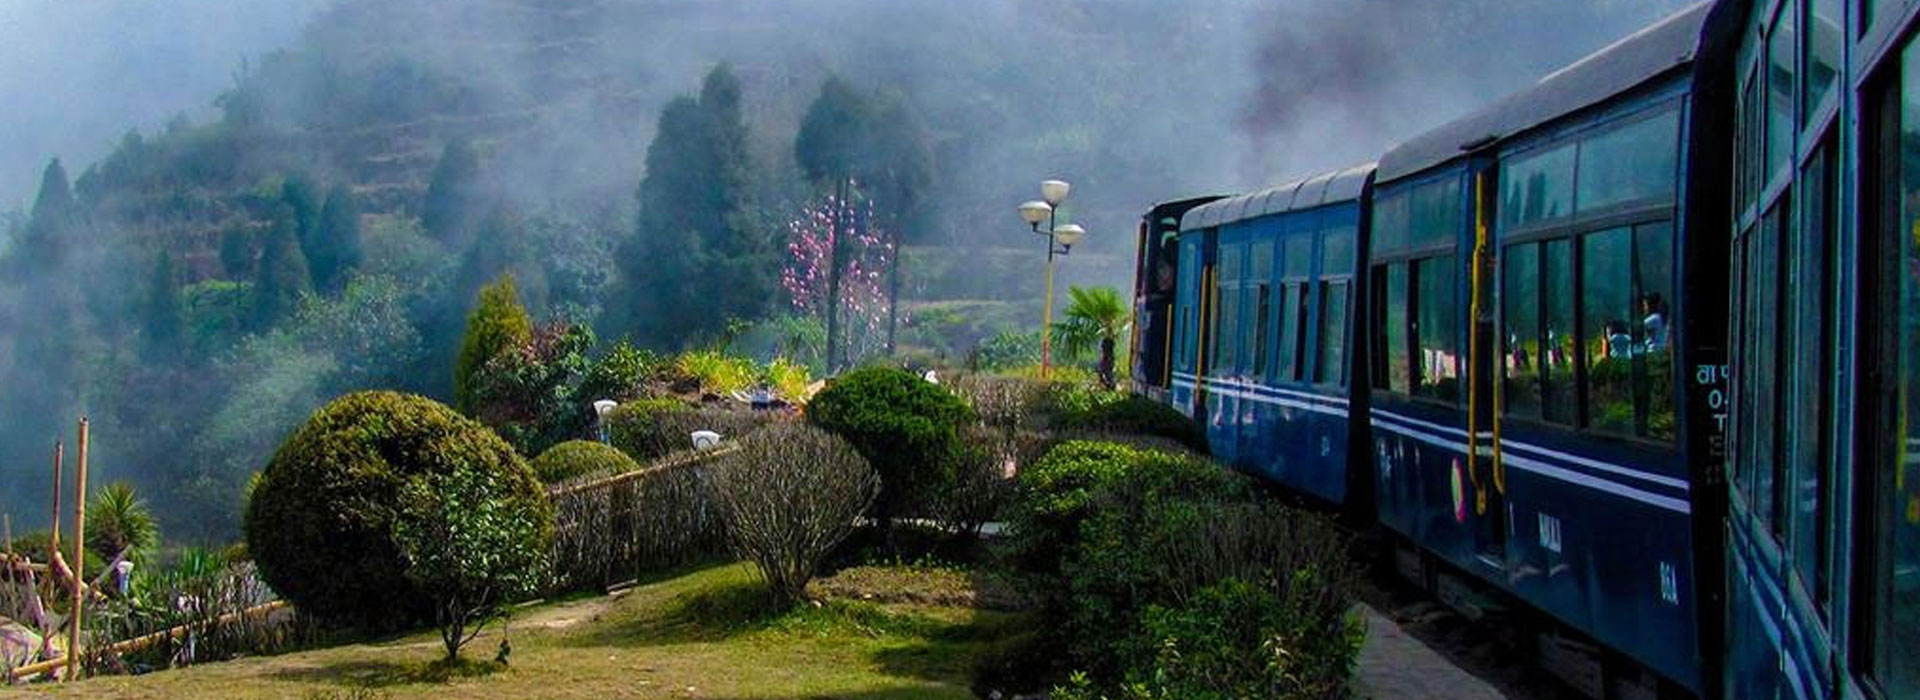 http://www.rareindia.com/upload/collections/train-tours.jpg